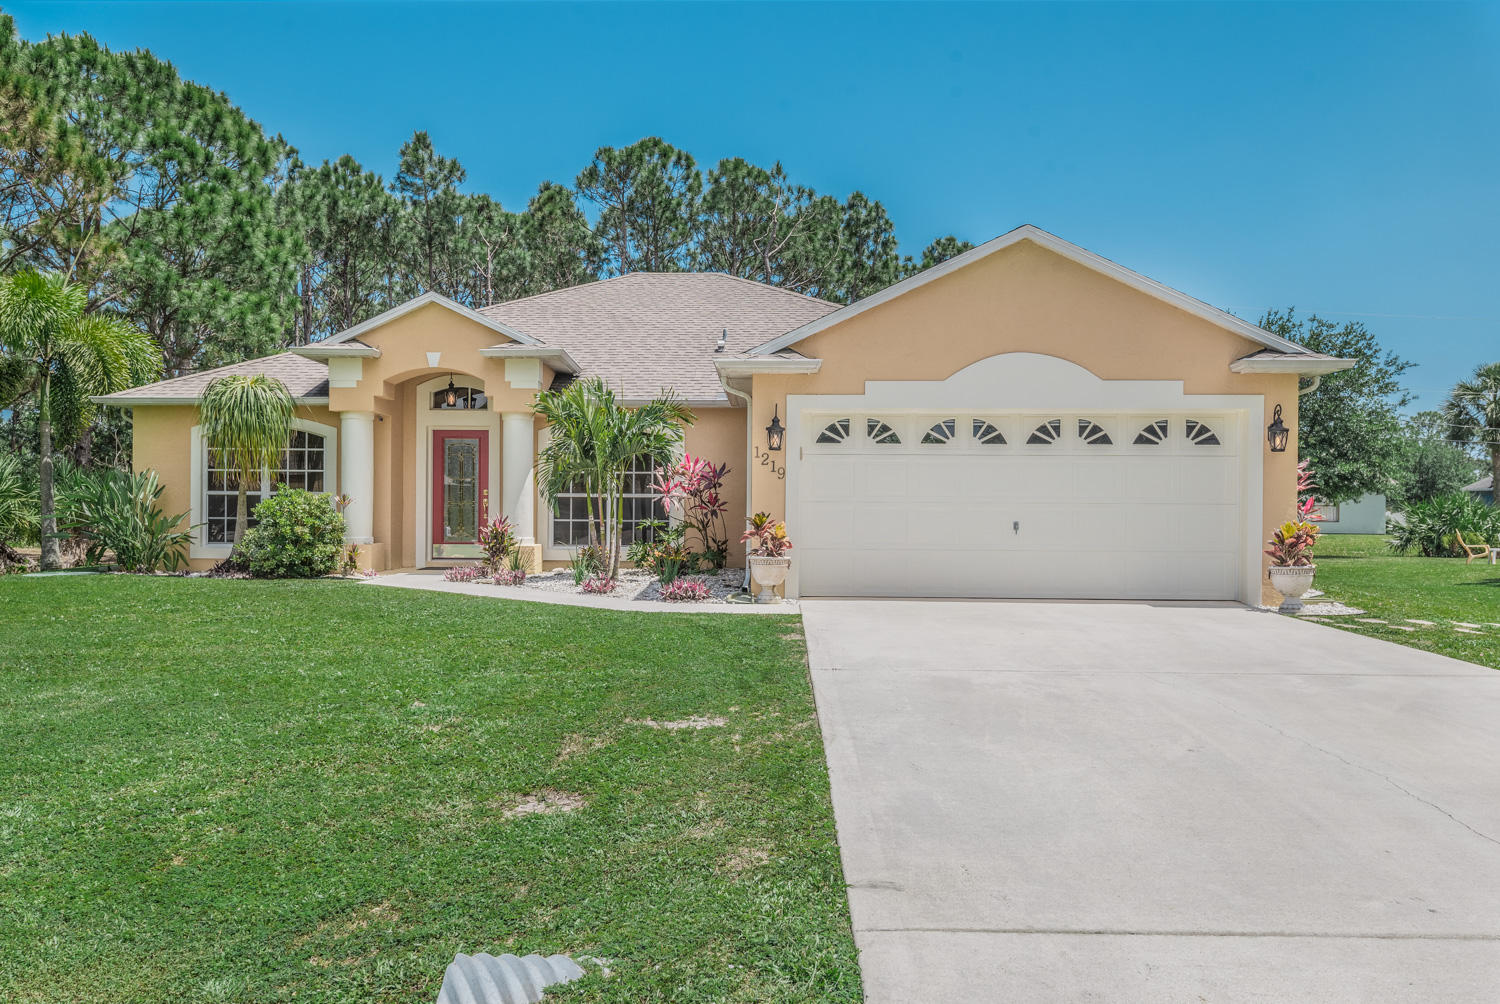 1219 SW Byron Street 34983 - One of Port Saint Lucie Homes for Sale